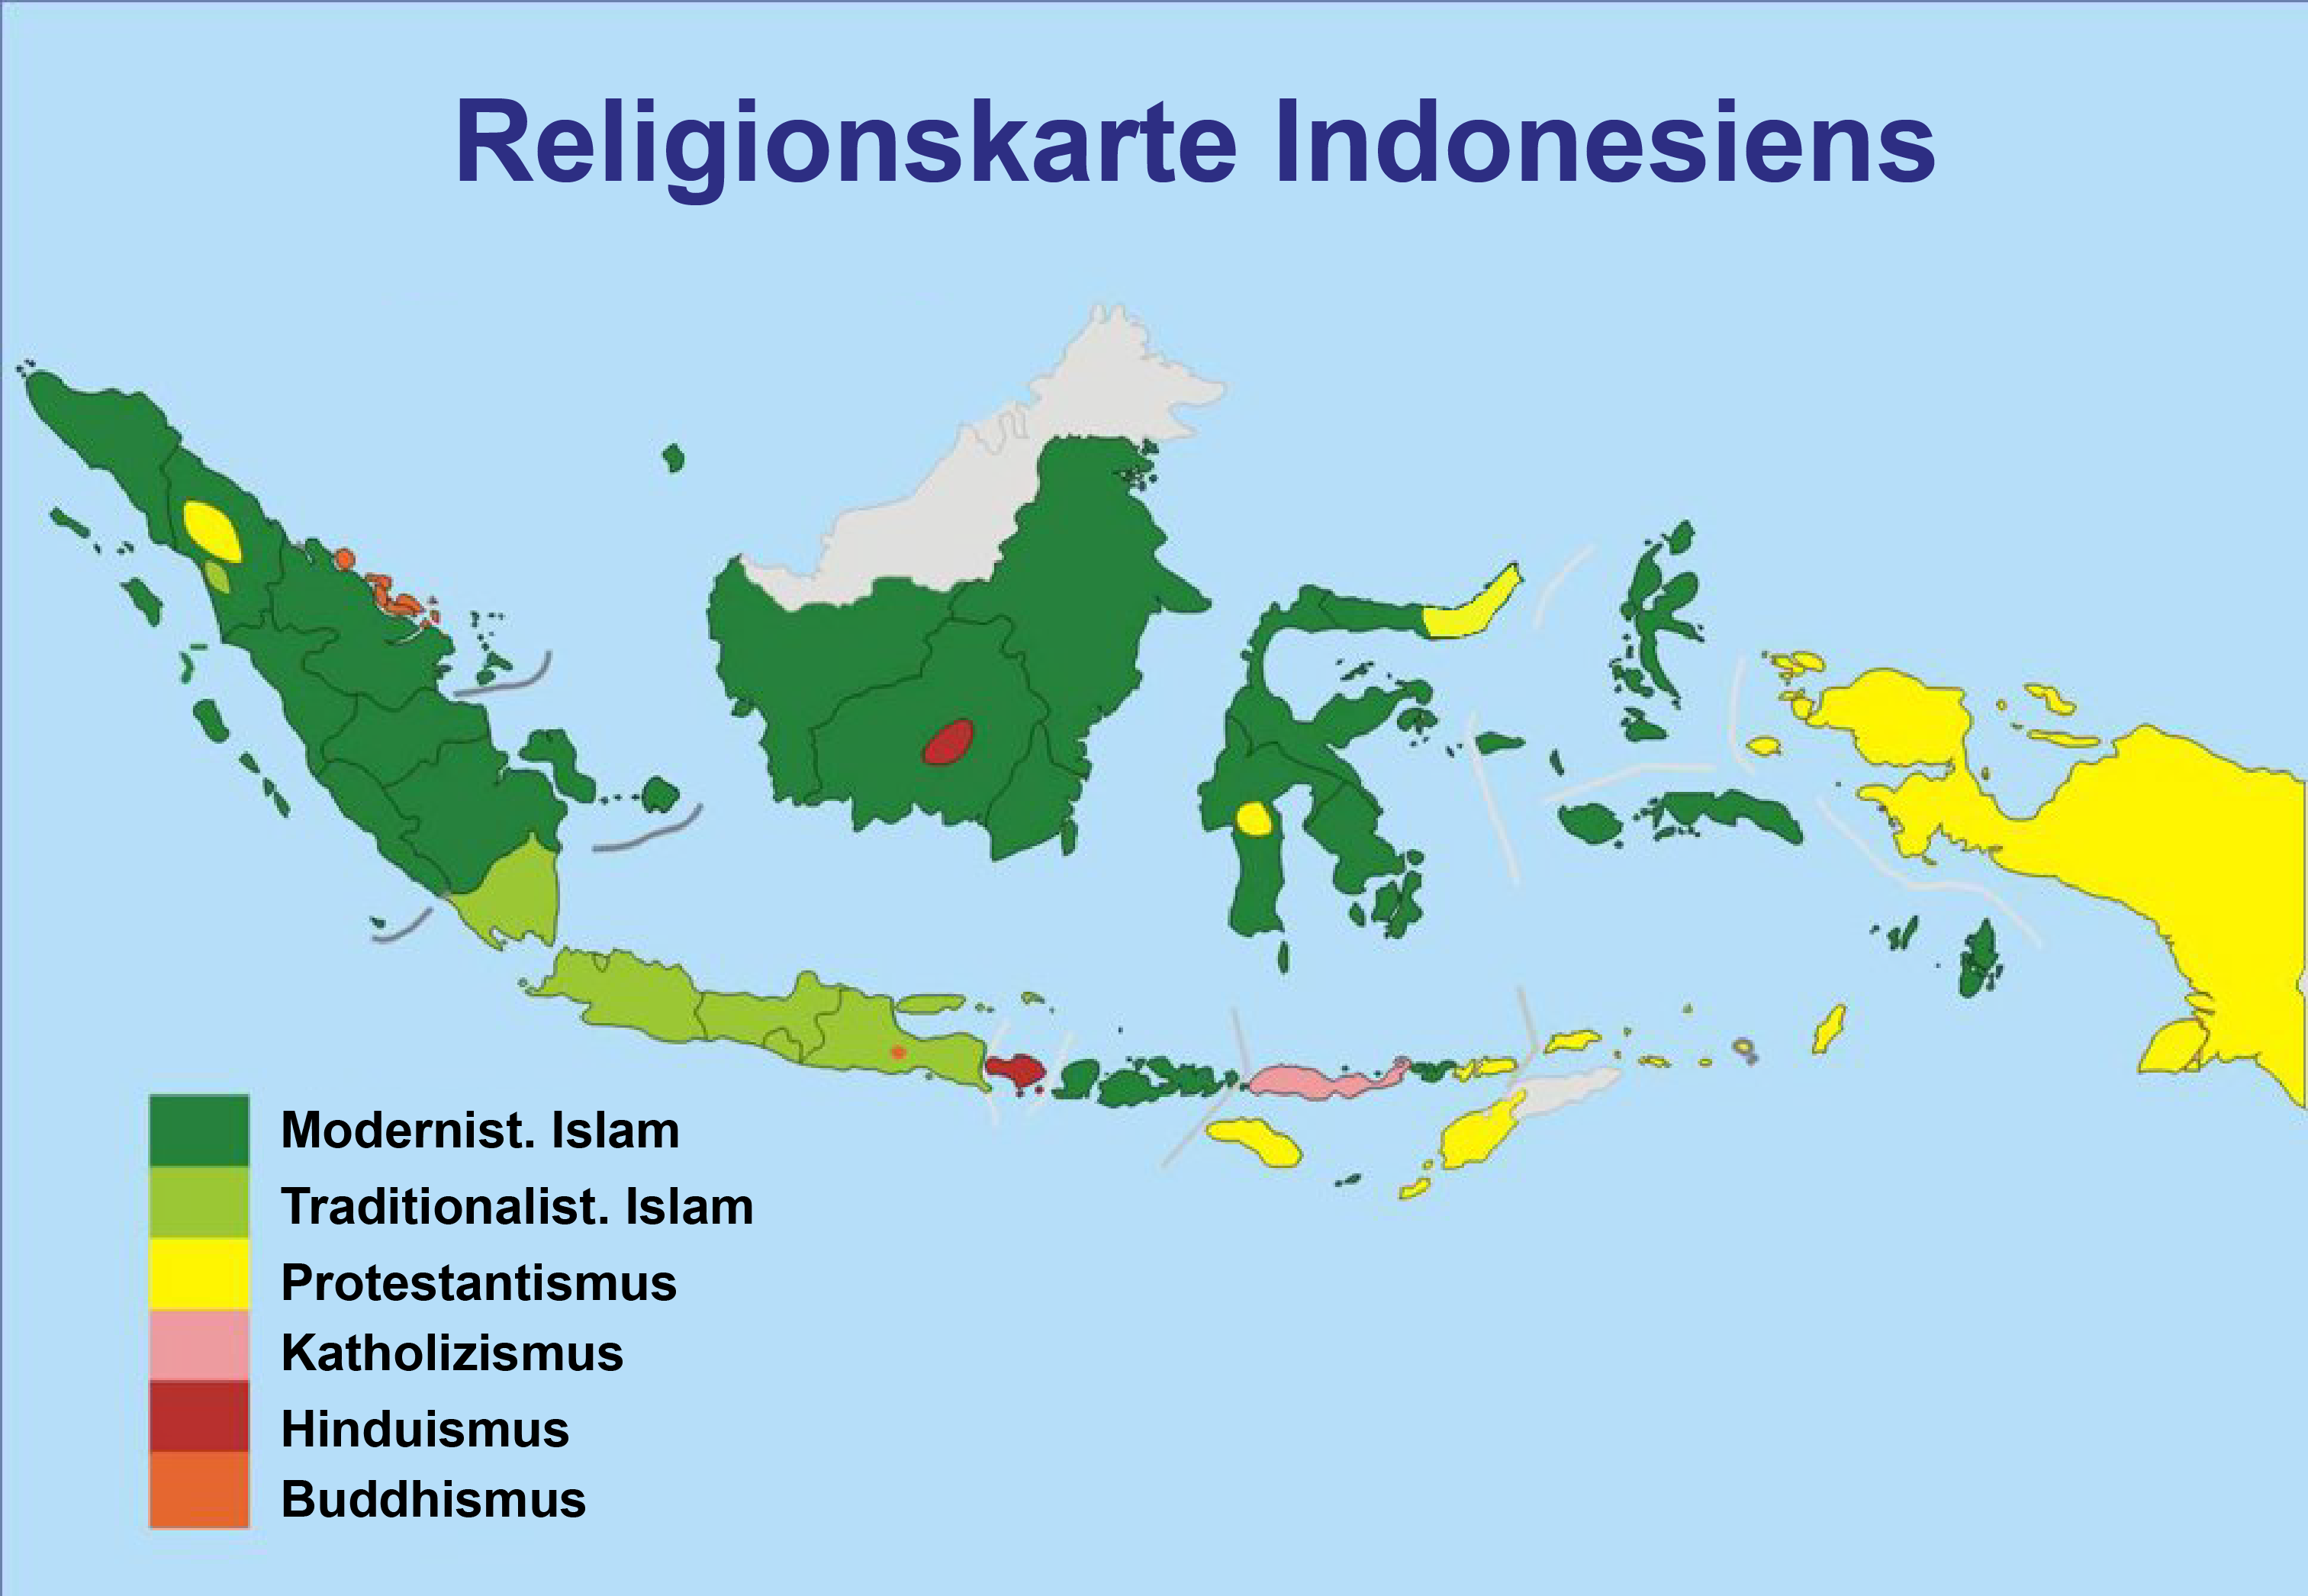 Indonesia Religion Map File:map Indonesian Religions